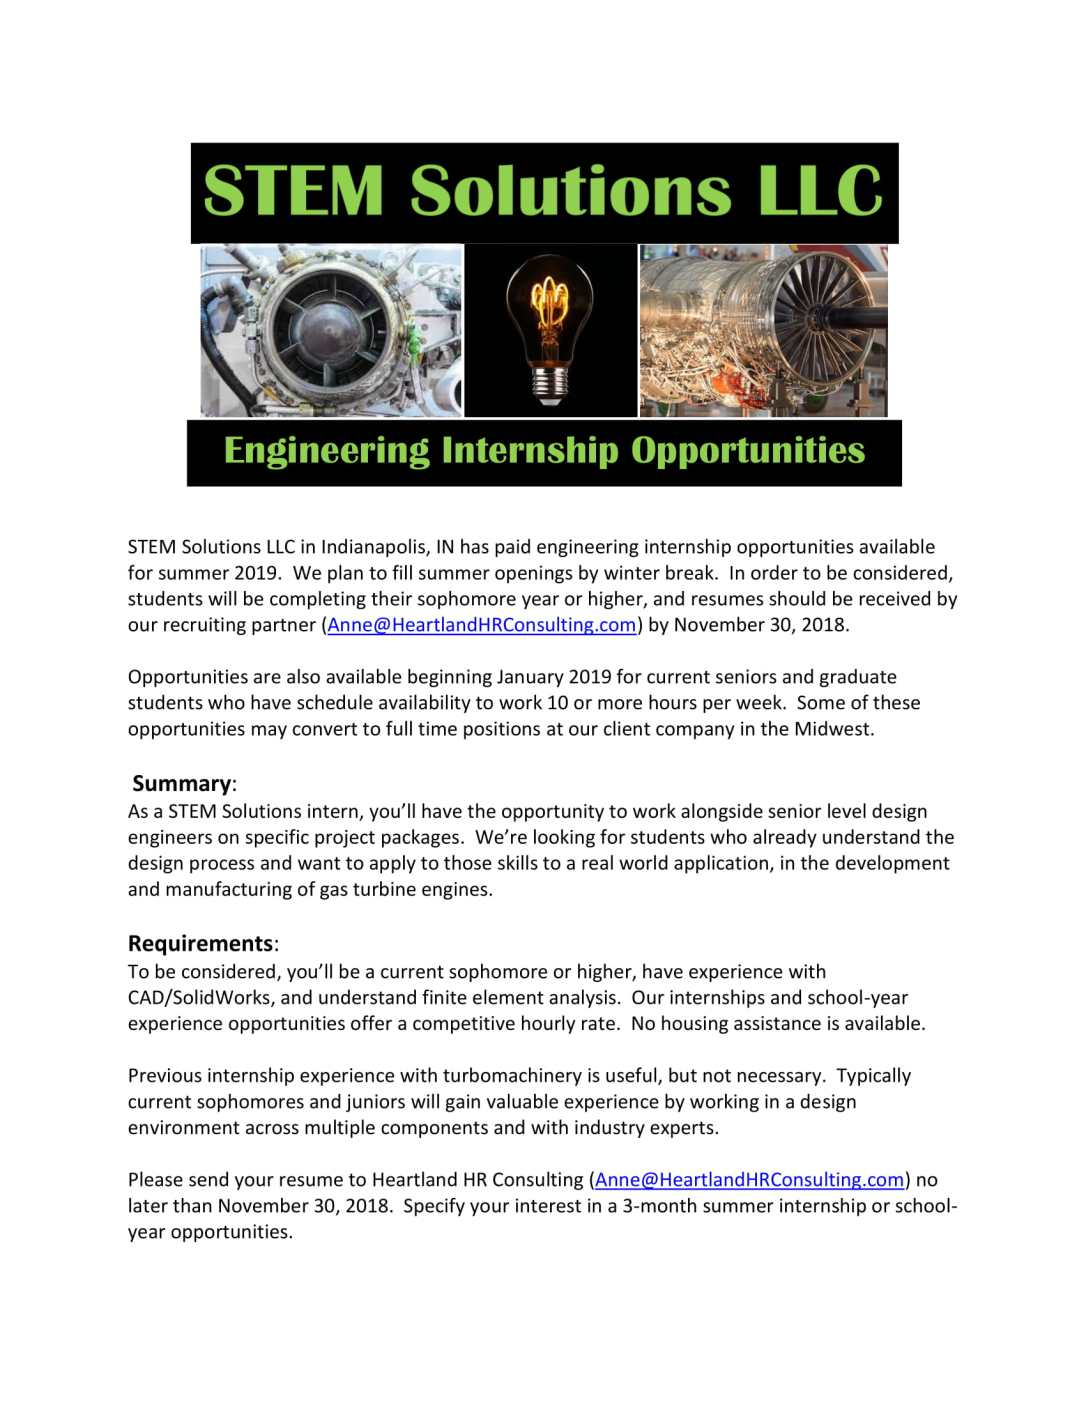 STEM Solutions intern flyer-1